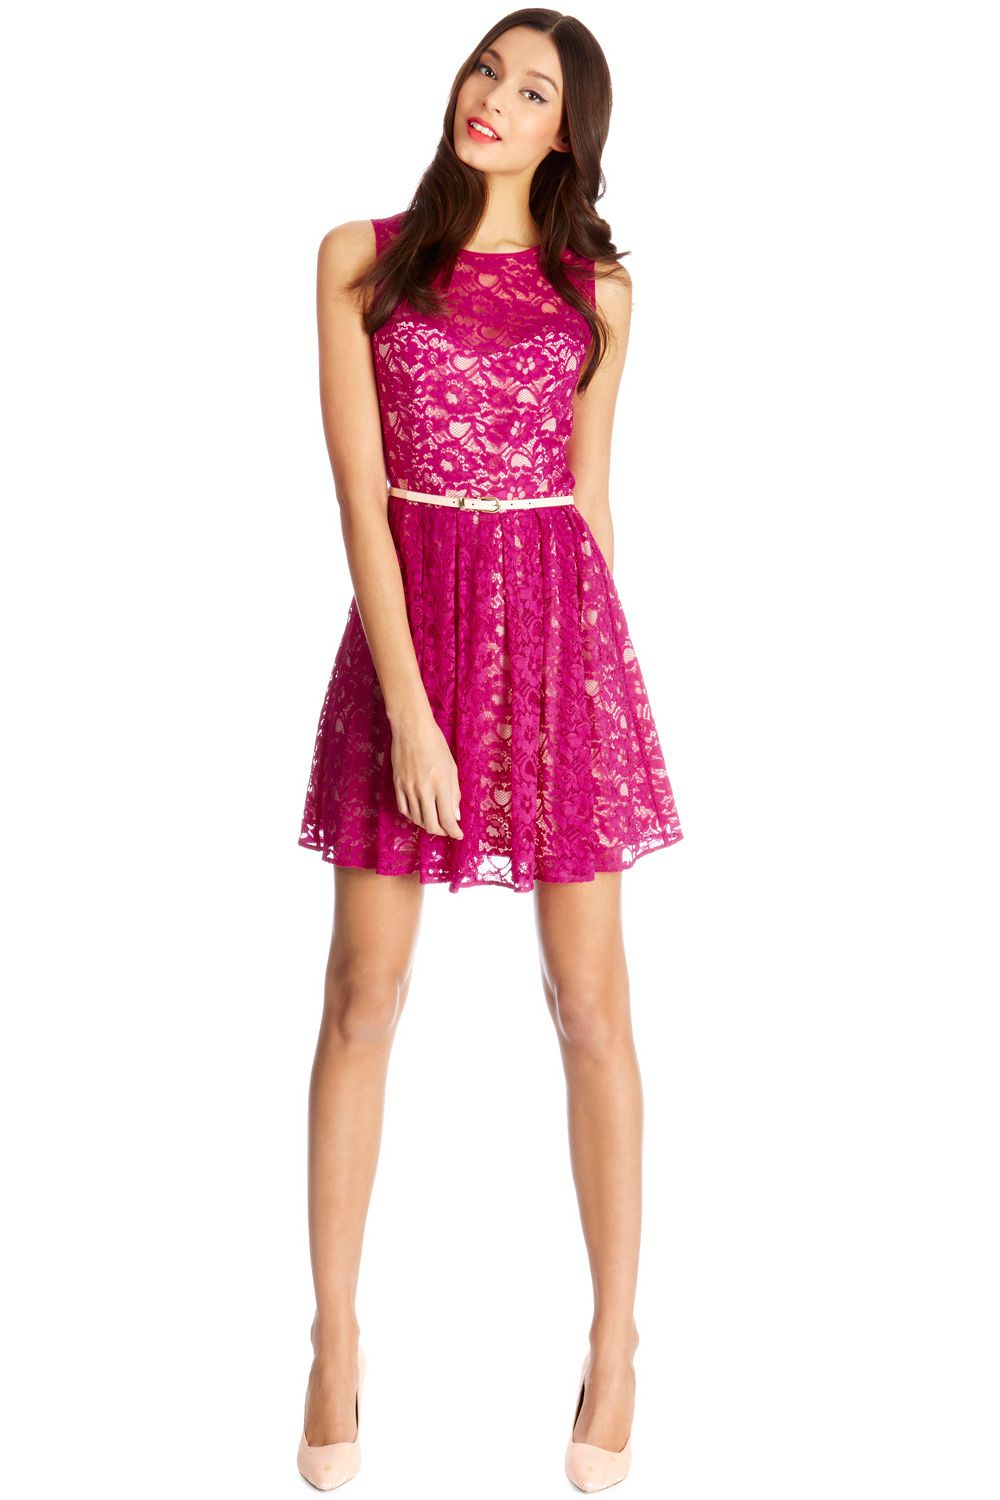 Lorna lace skater dress